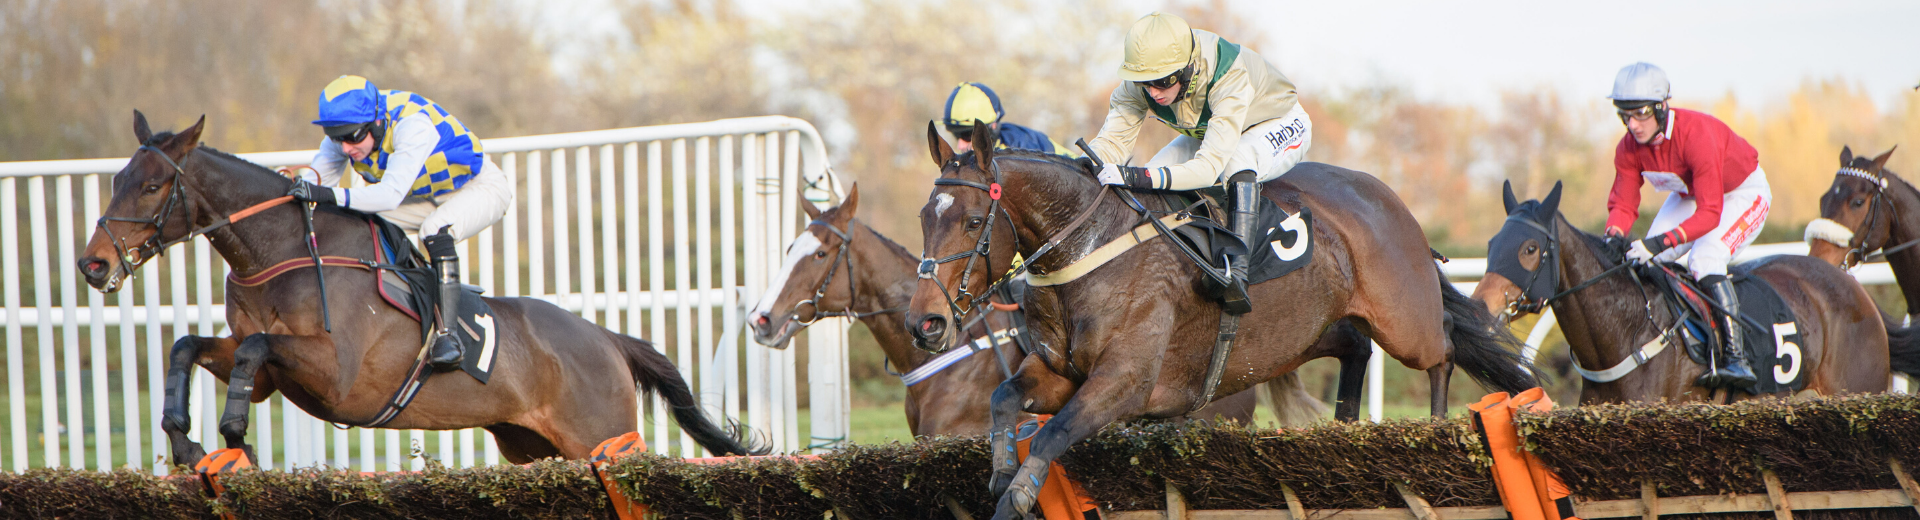 Musselburgh Shapes Up For Start Of National Hunt Season